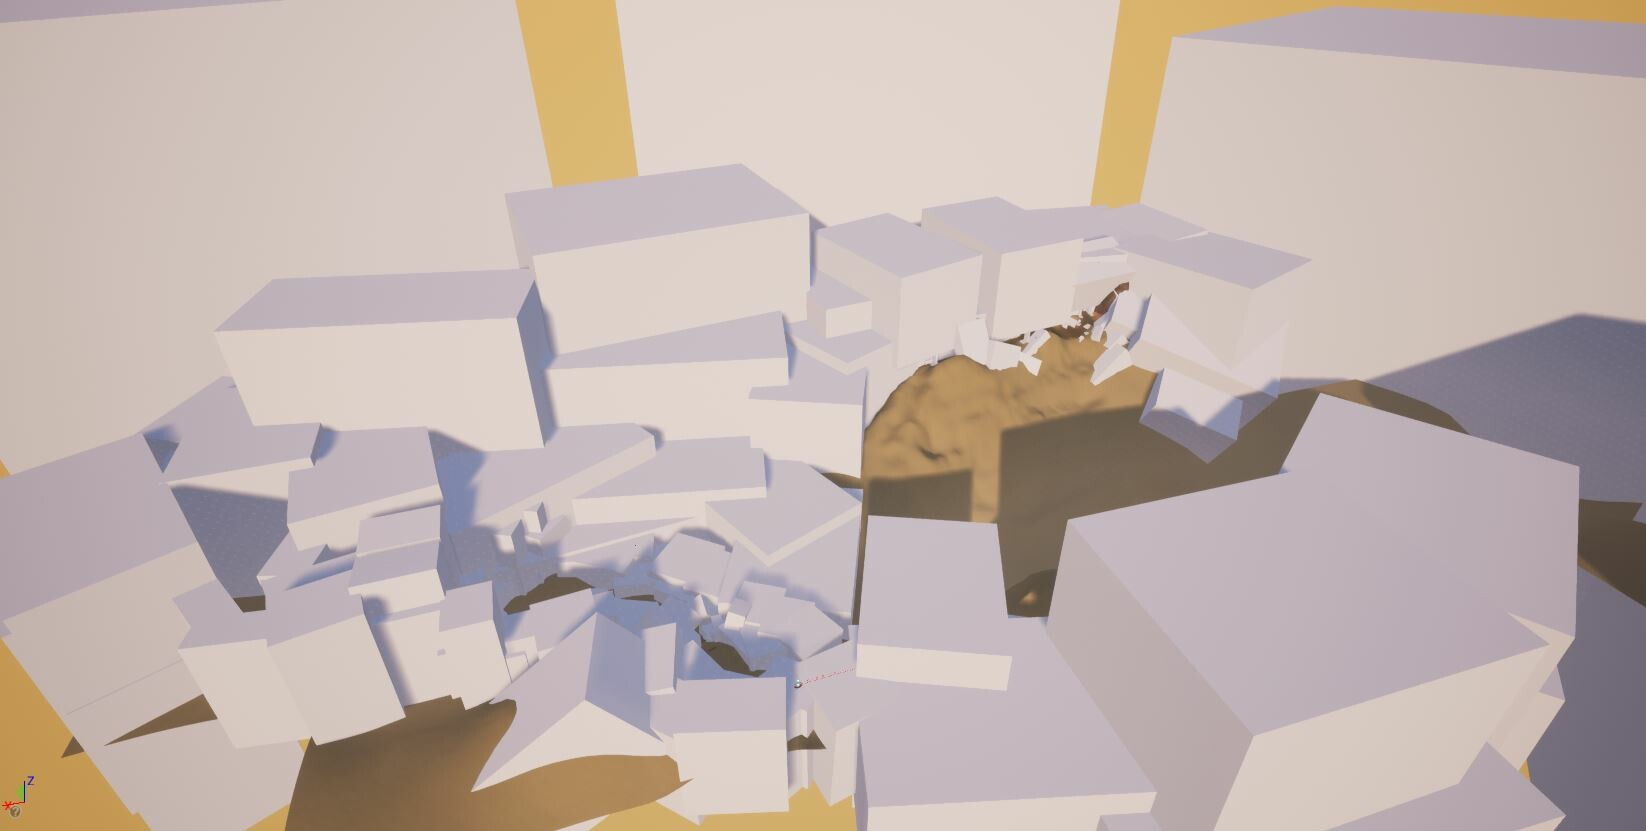 Greybox of the level